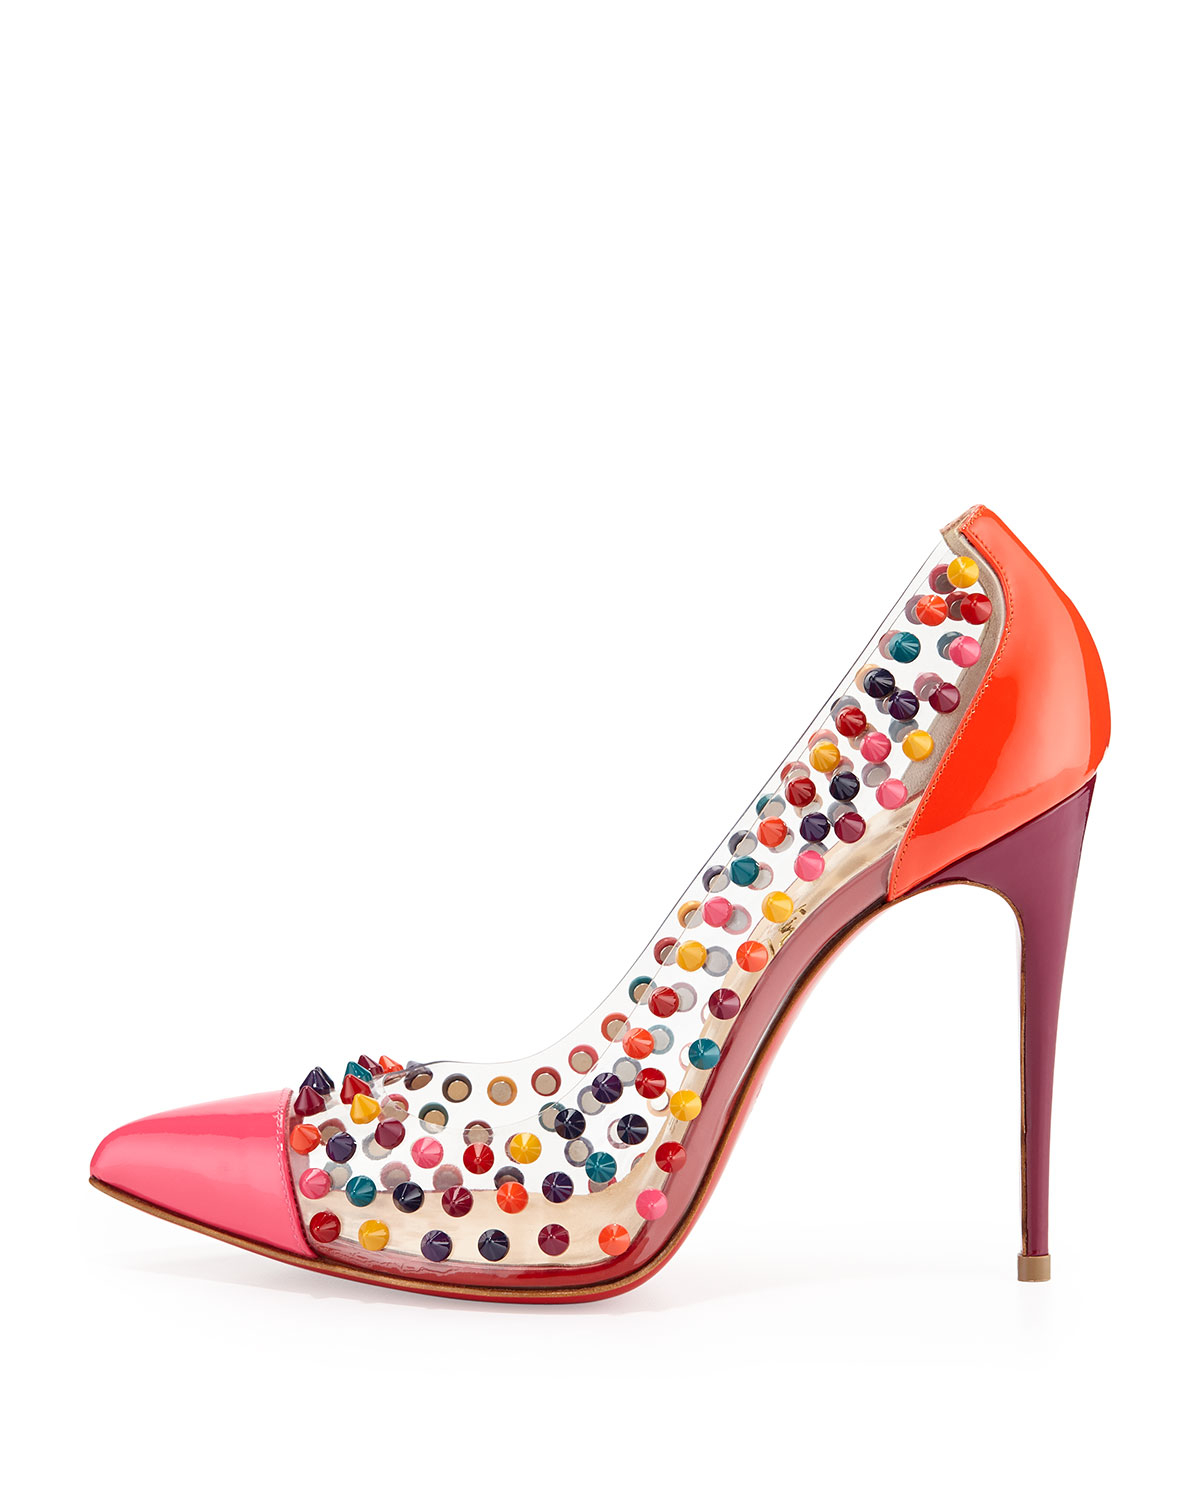 2eff36962c0b ... netherlands lyst christian louboutin spike me pvc cap toe red sole pump  in pink c9053 23e95